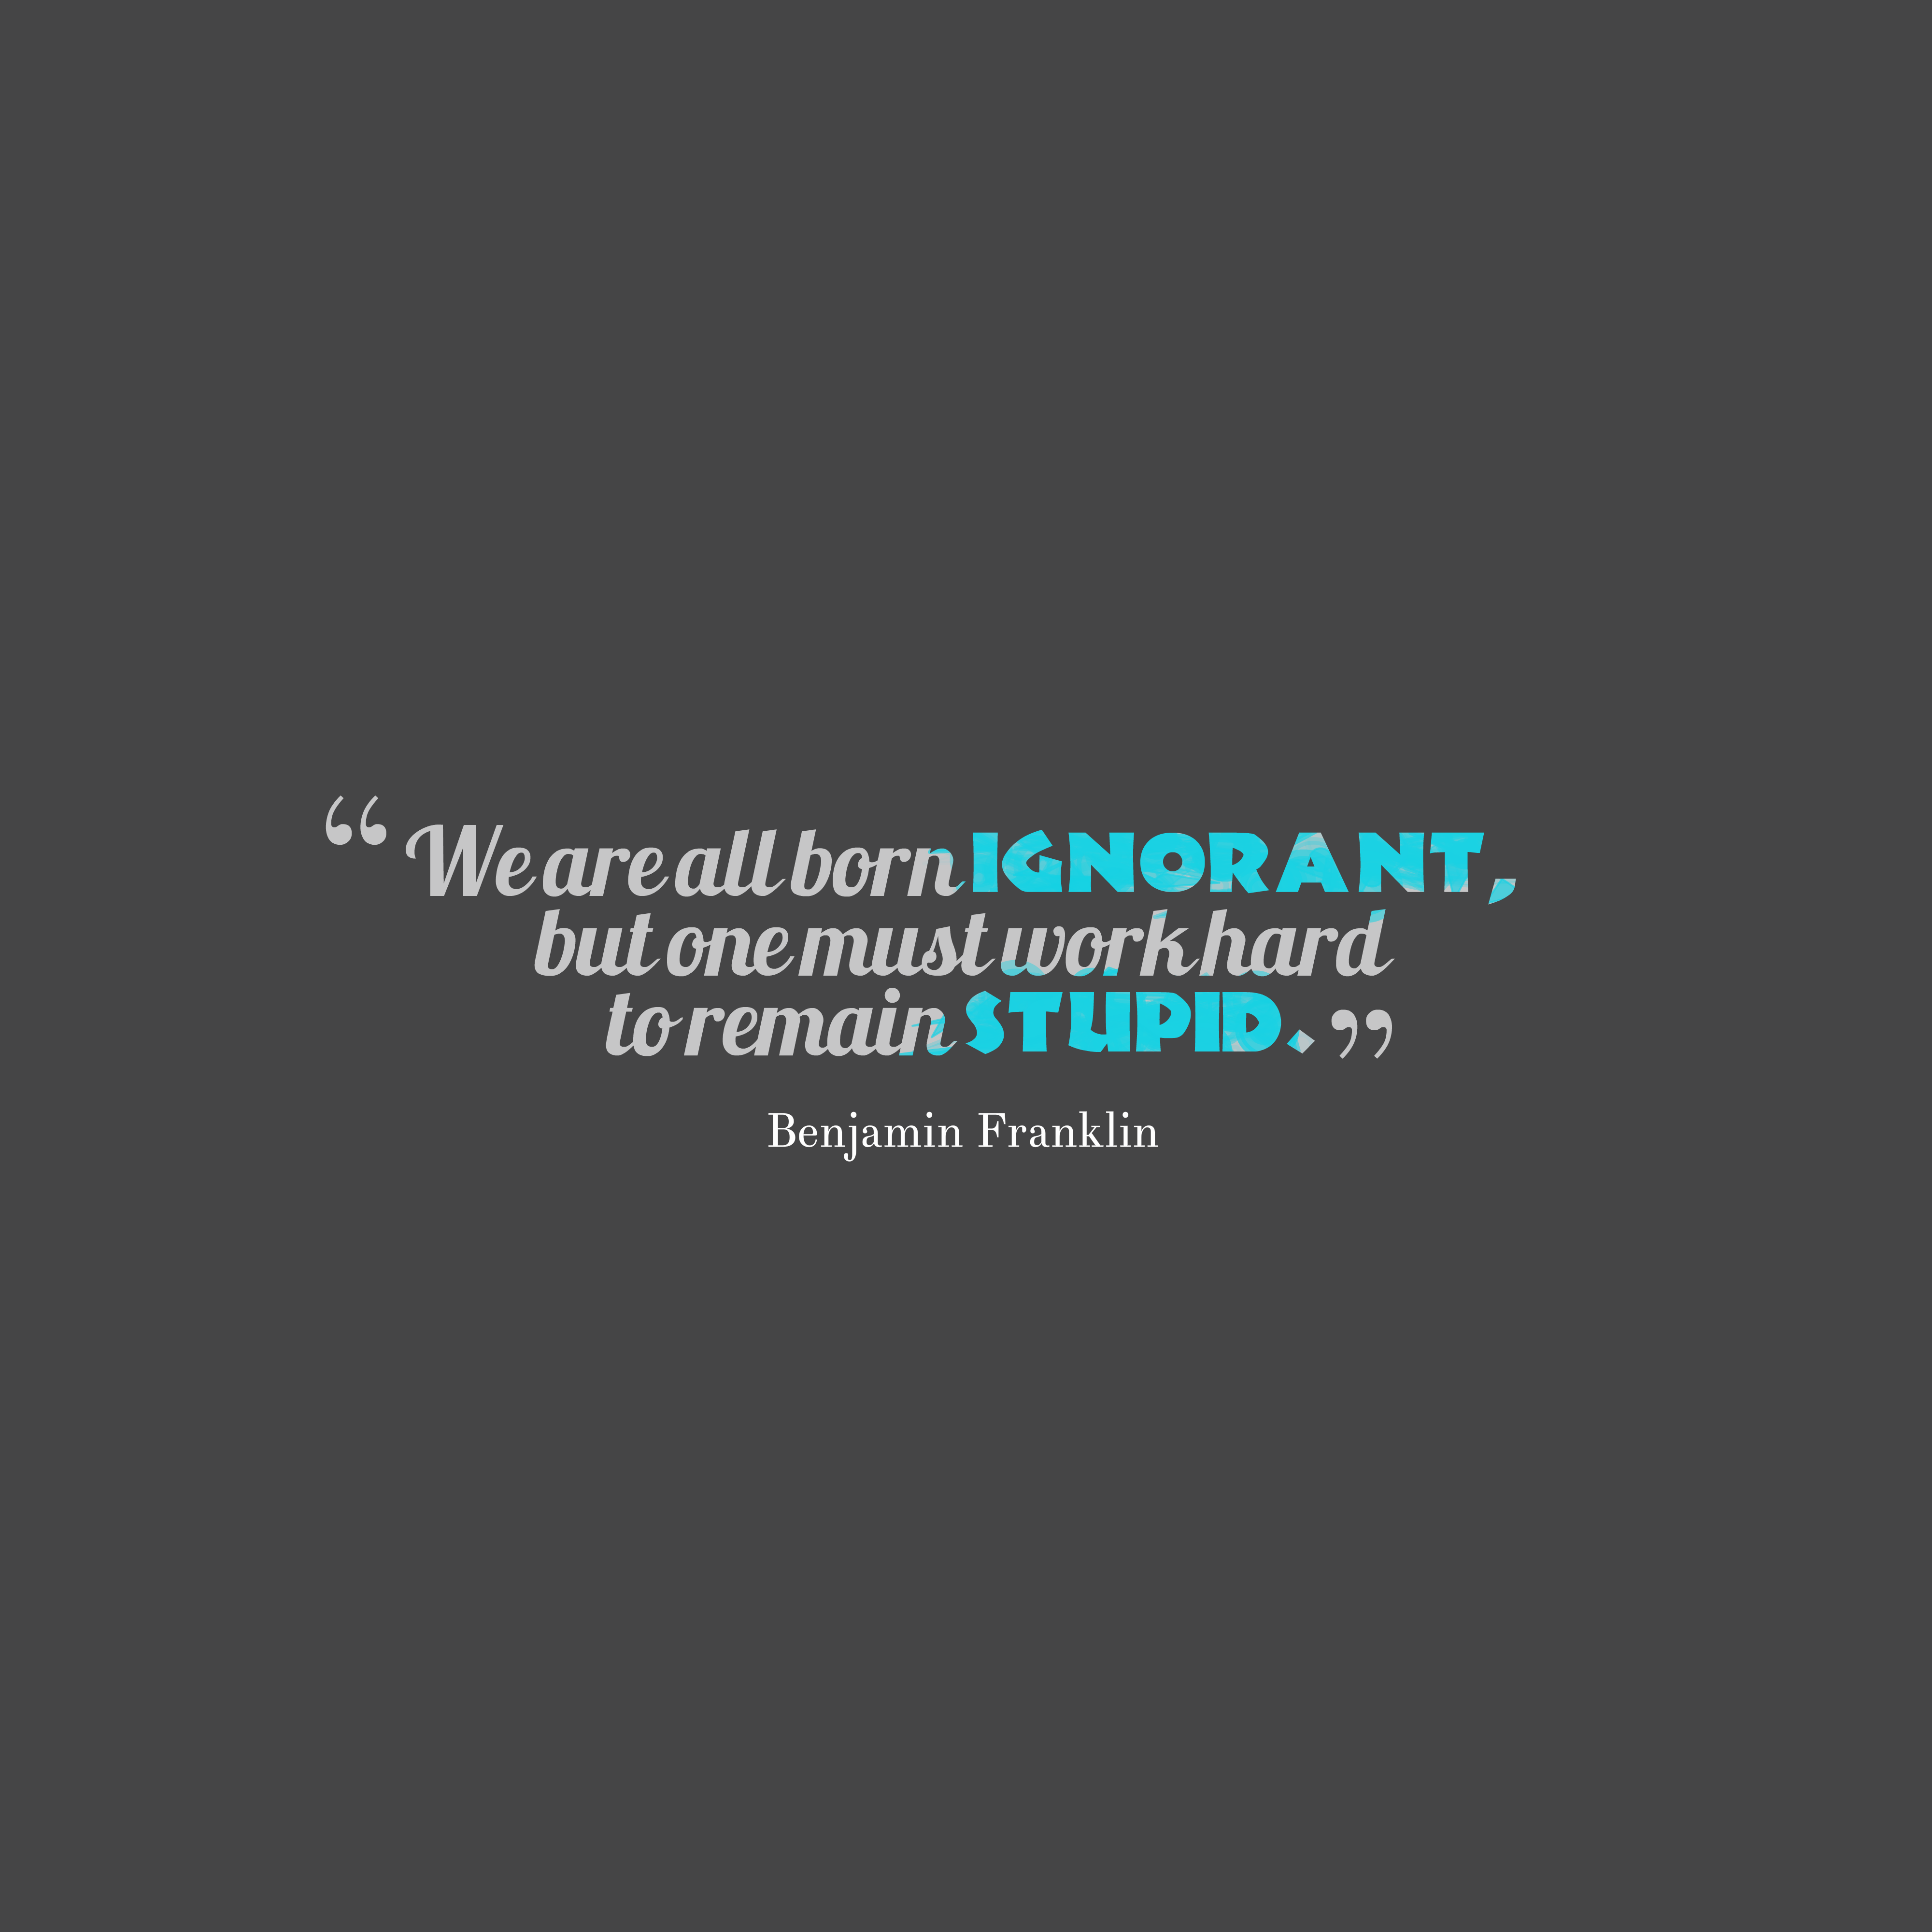 Benjamin Franklin Quote About Knowledge